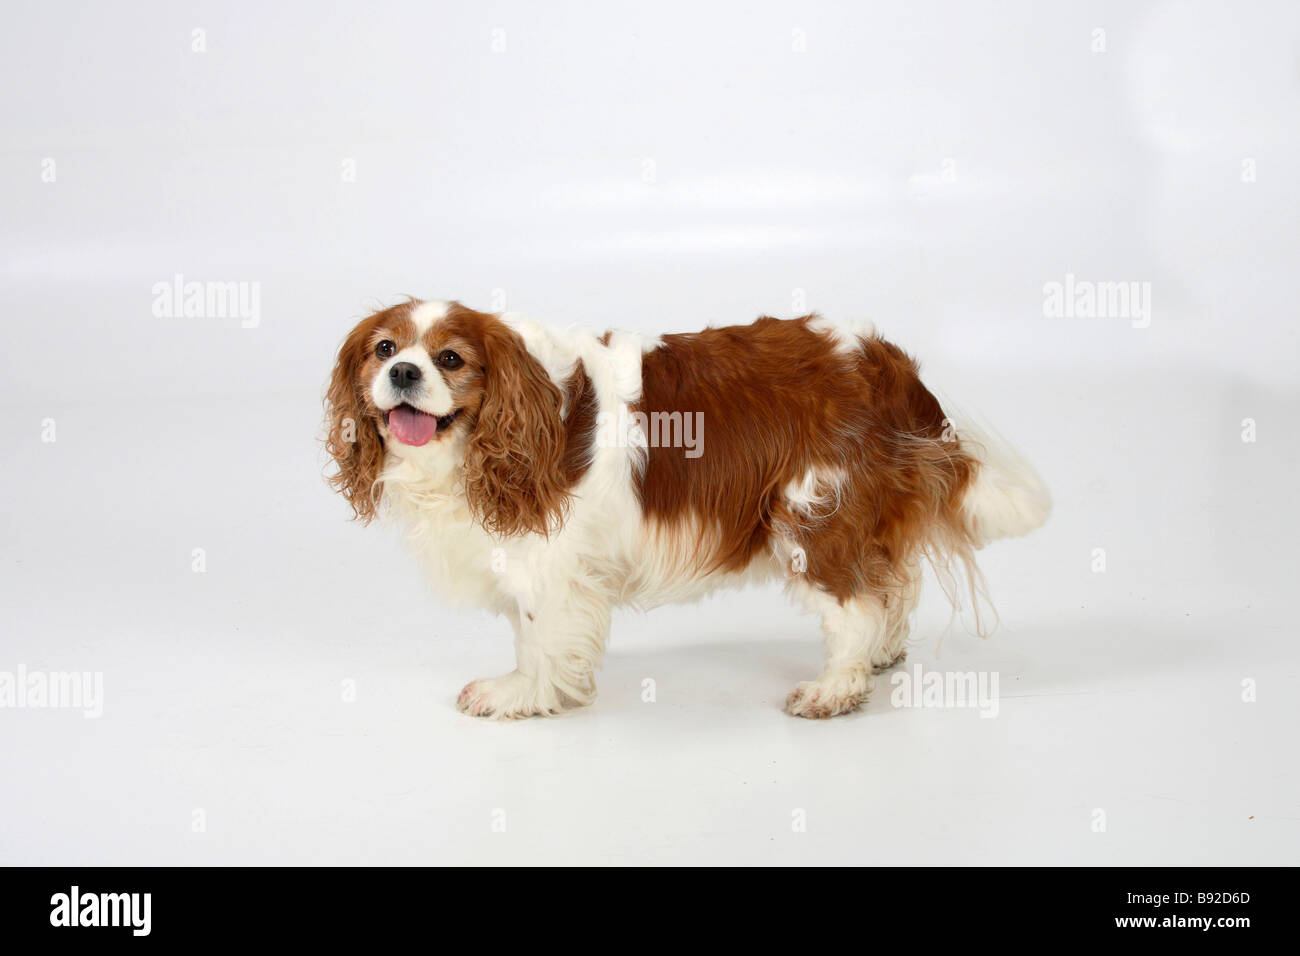 4 6 Year Male Cavalier King Charles Spaniel: Cavalier King Charles Spaniel Blenheim 7 Years Old